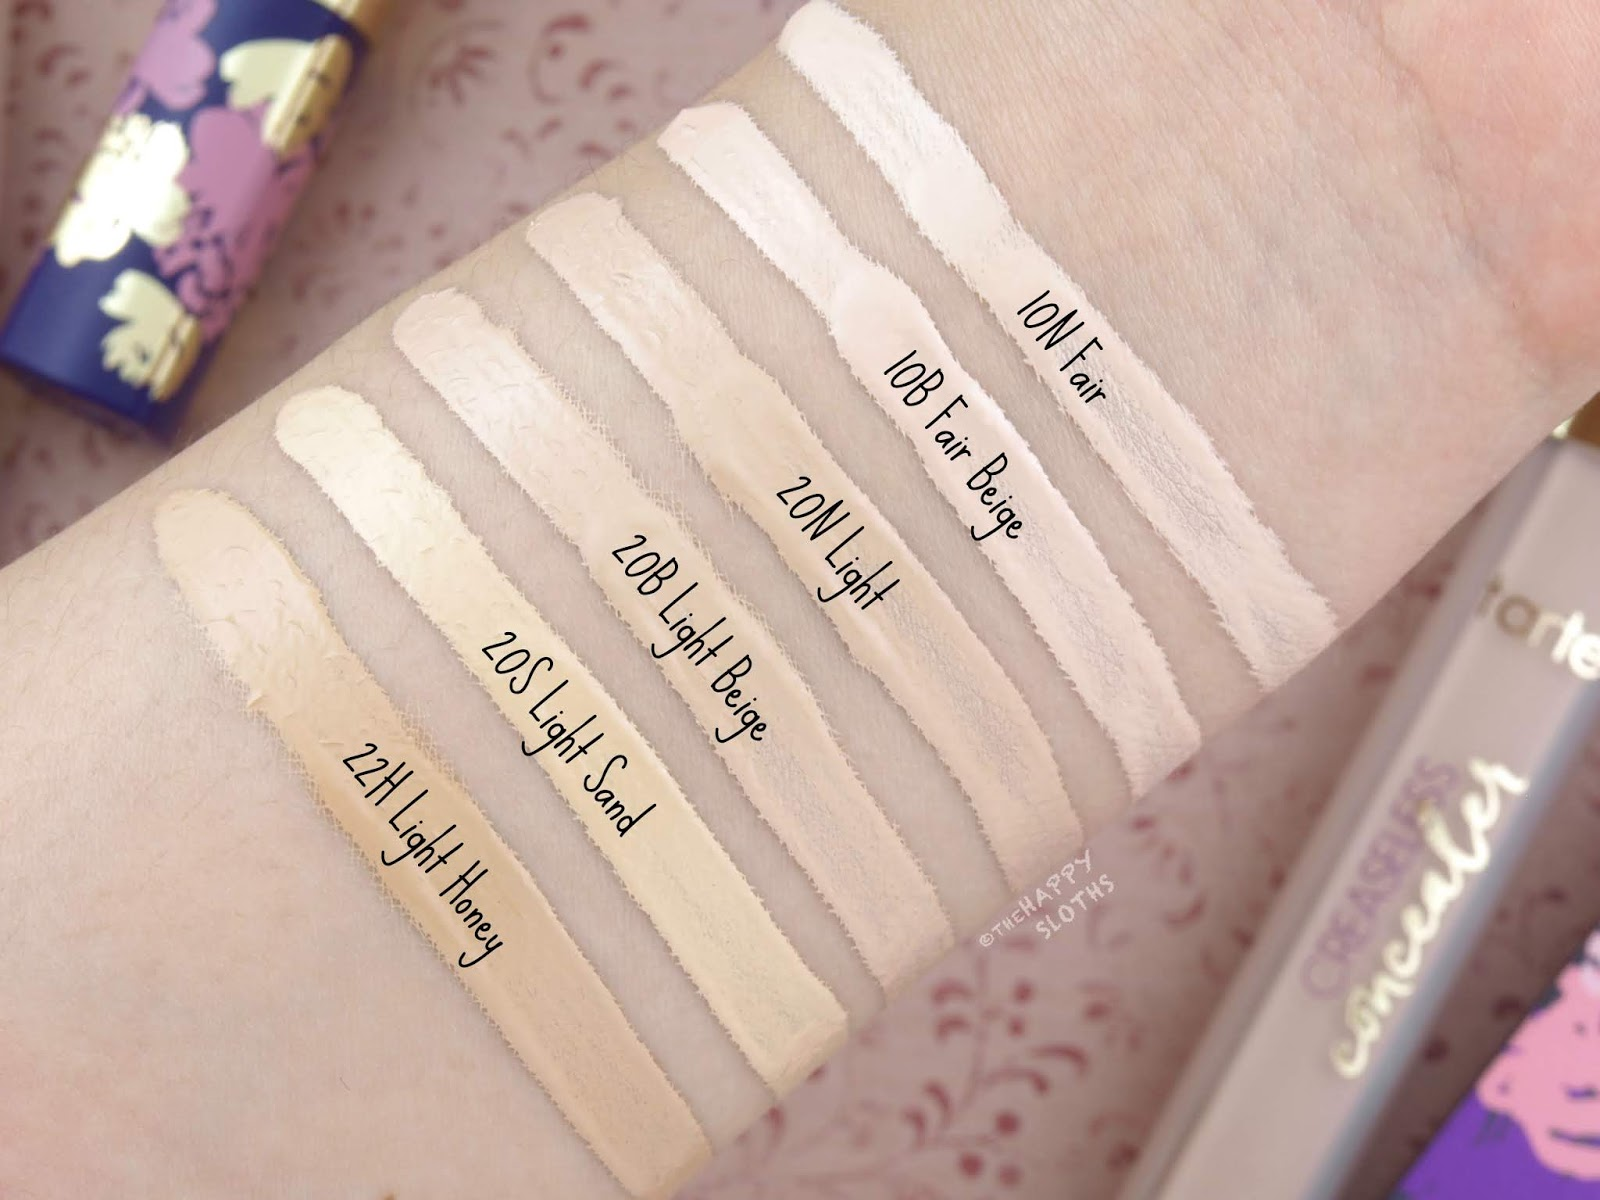 Tarte | Creaseless Concealer: Review and Swatches